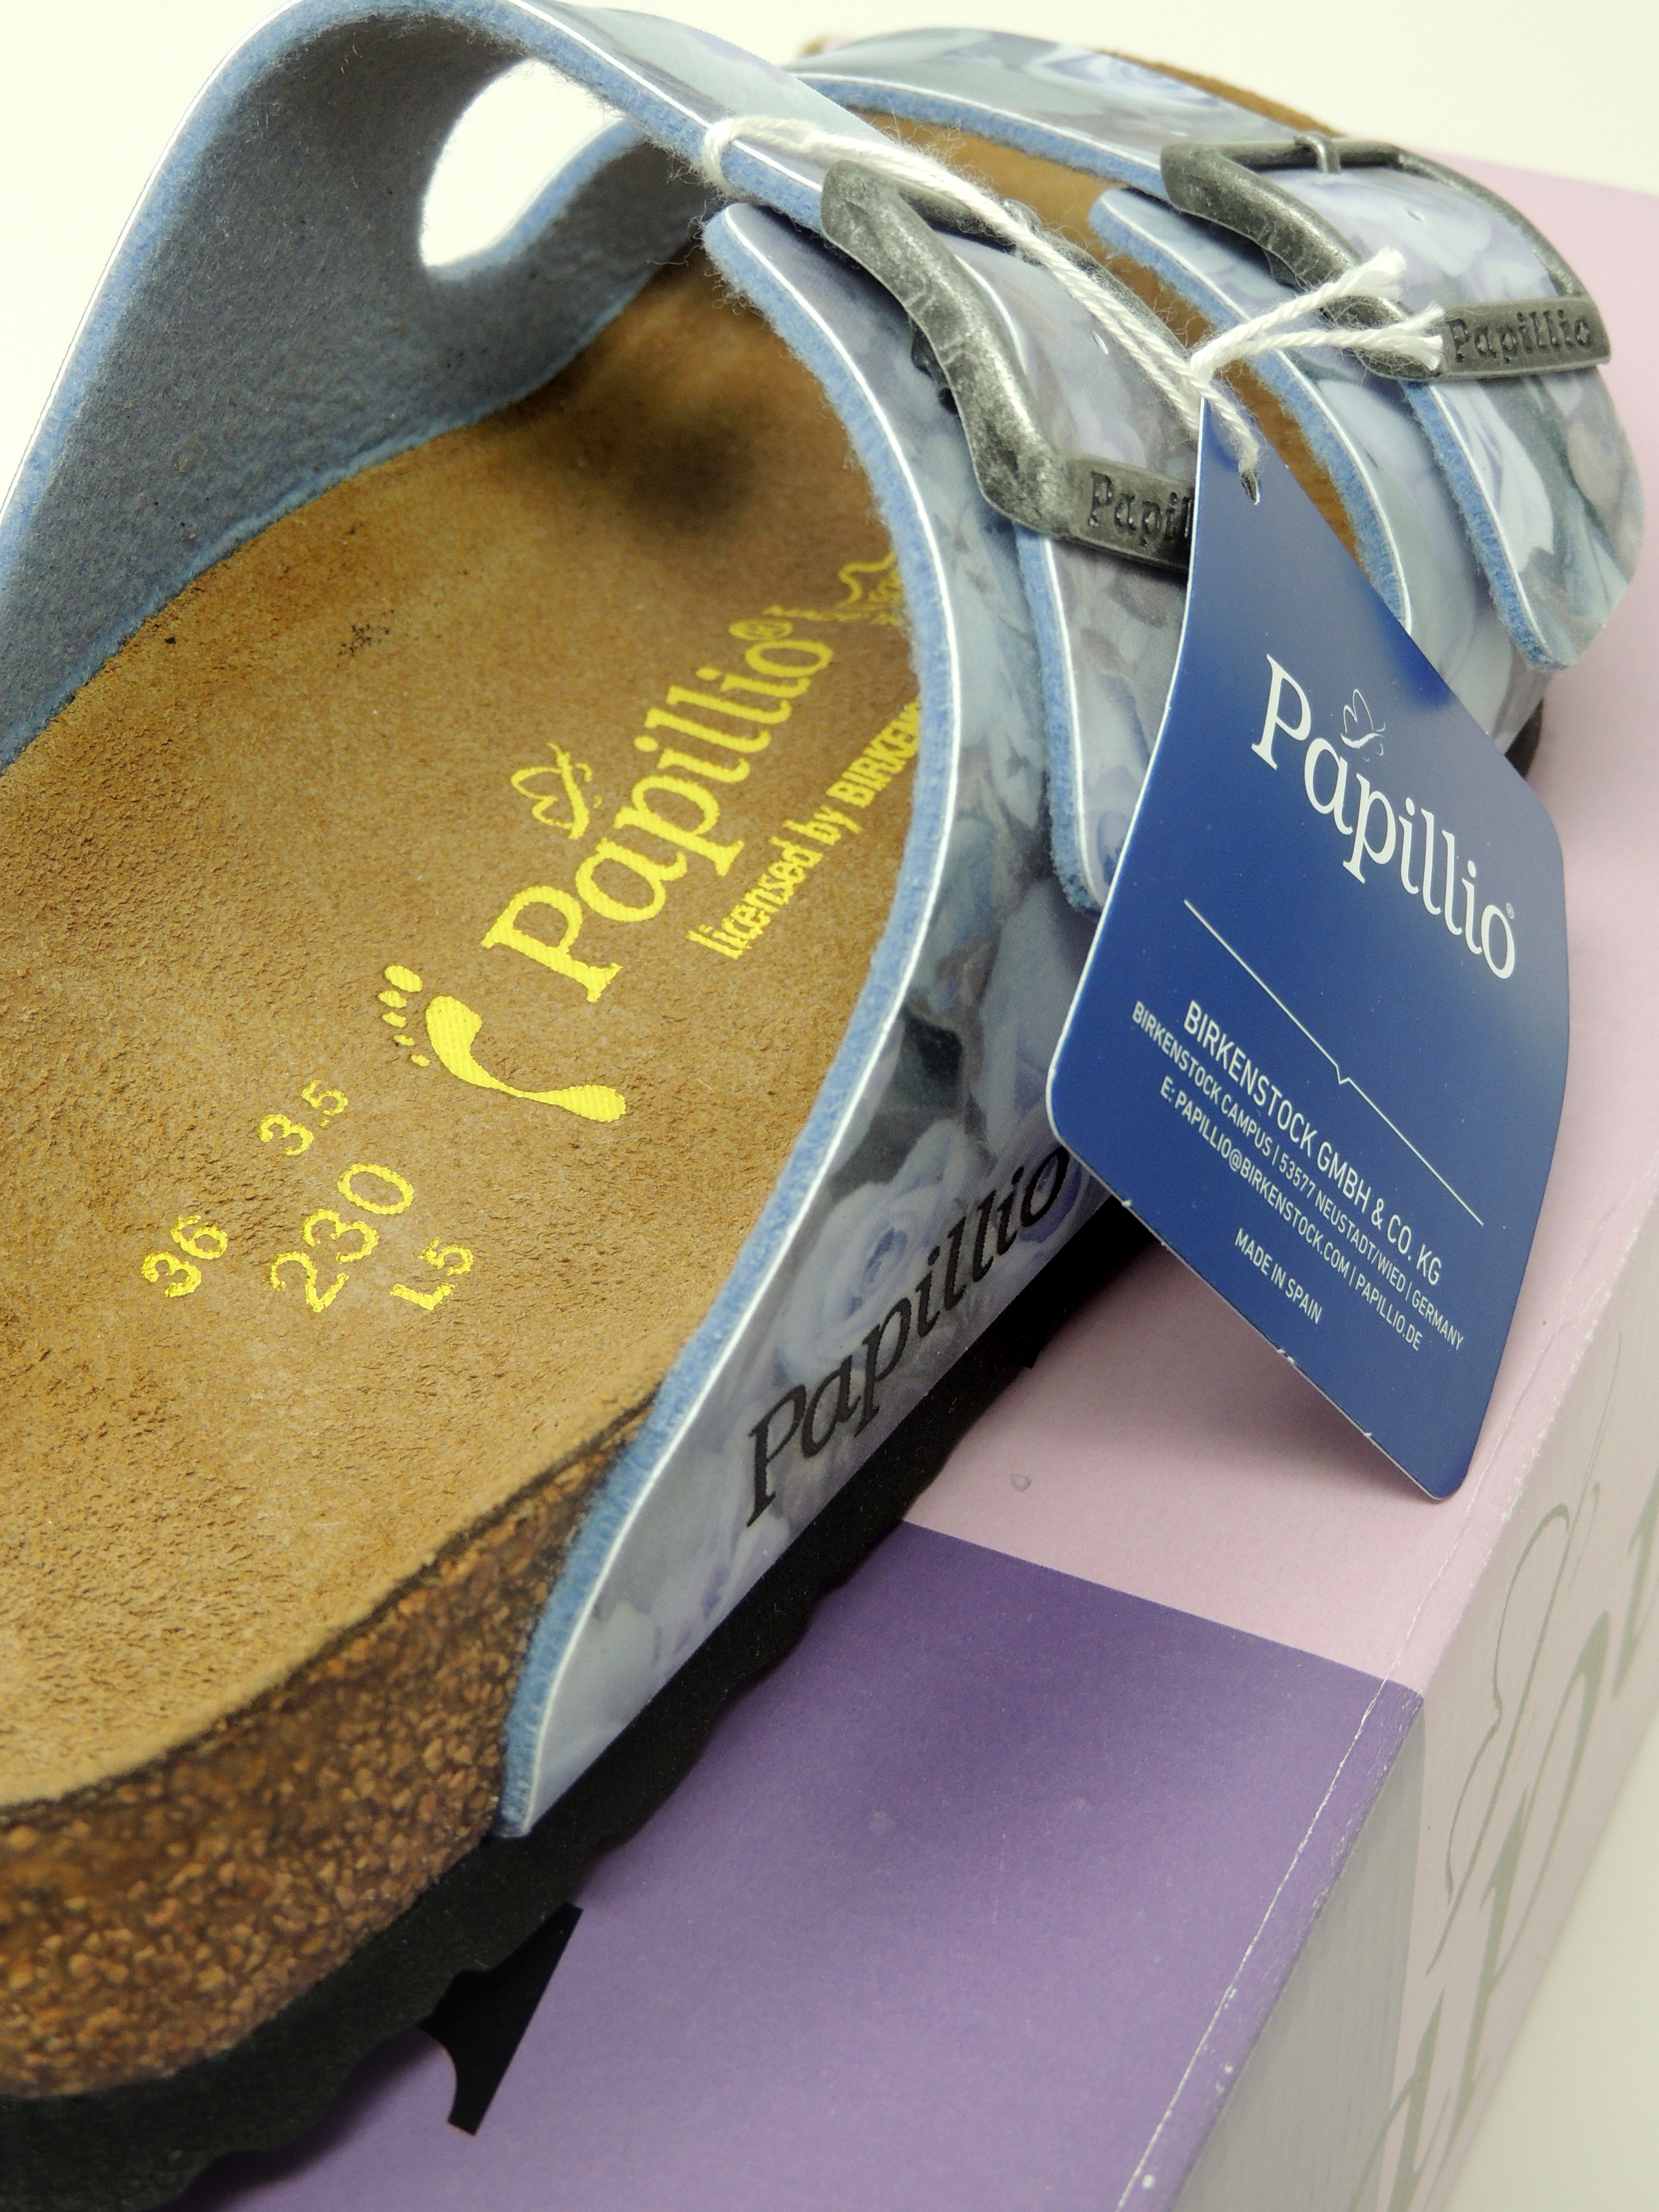 55d0fc022a98 Right  a Papillio sandal. See how the footbed looks different and where the  embossed